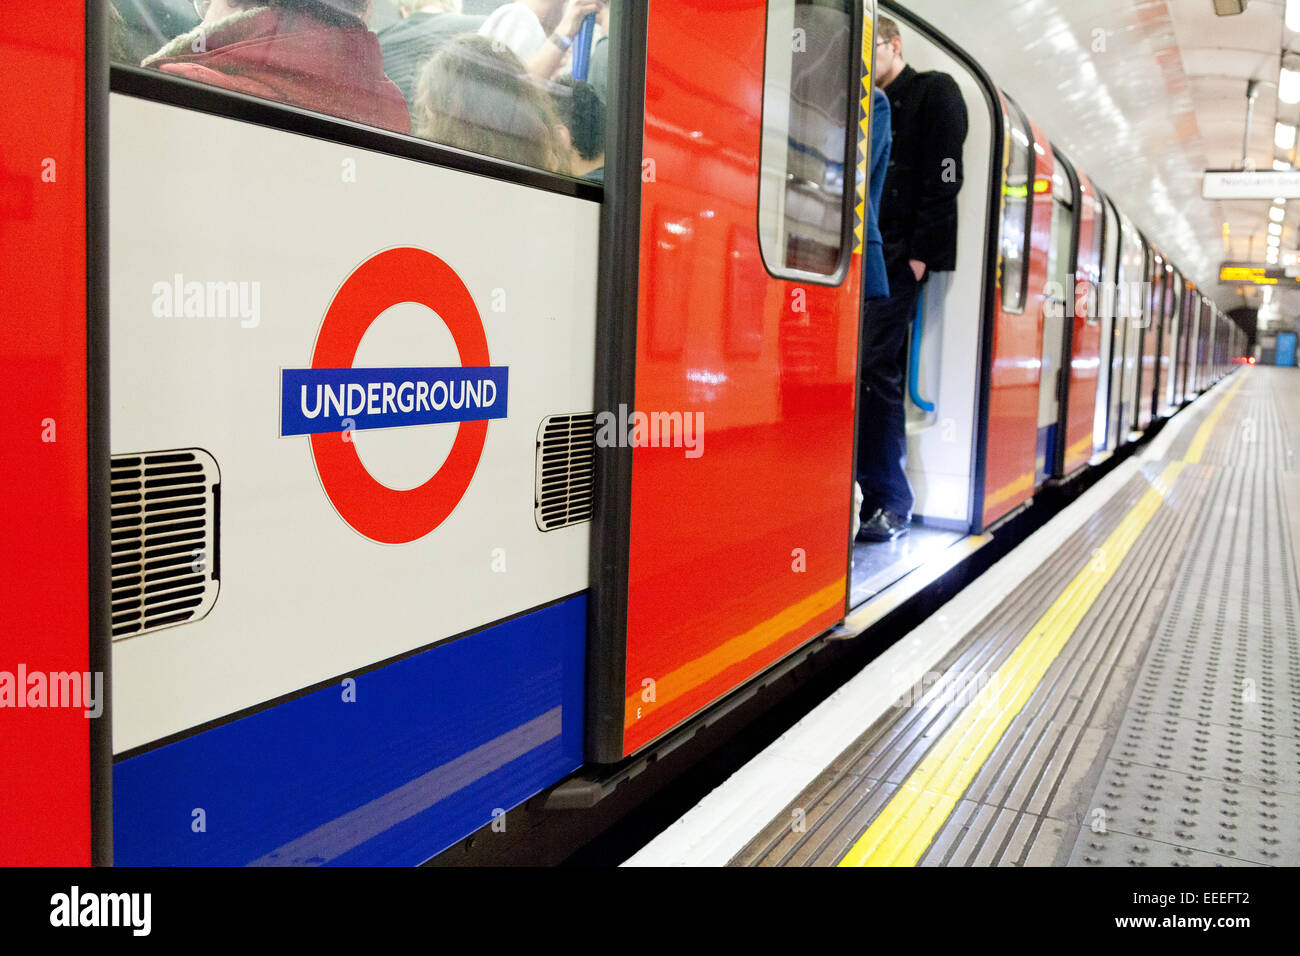 Victoria line train at the platform - Stock Image